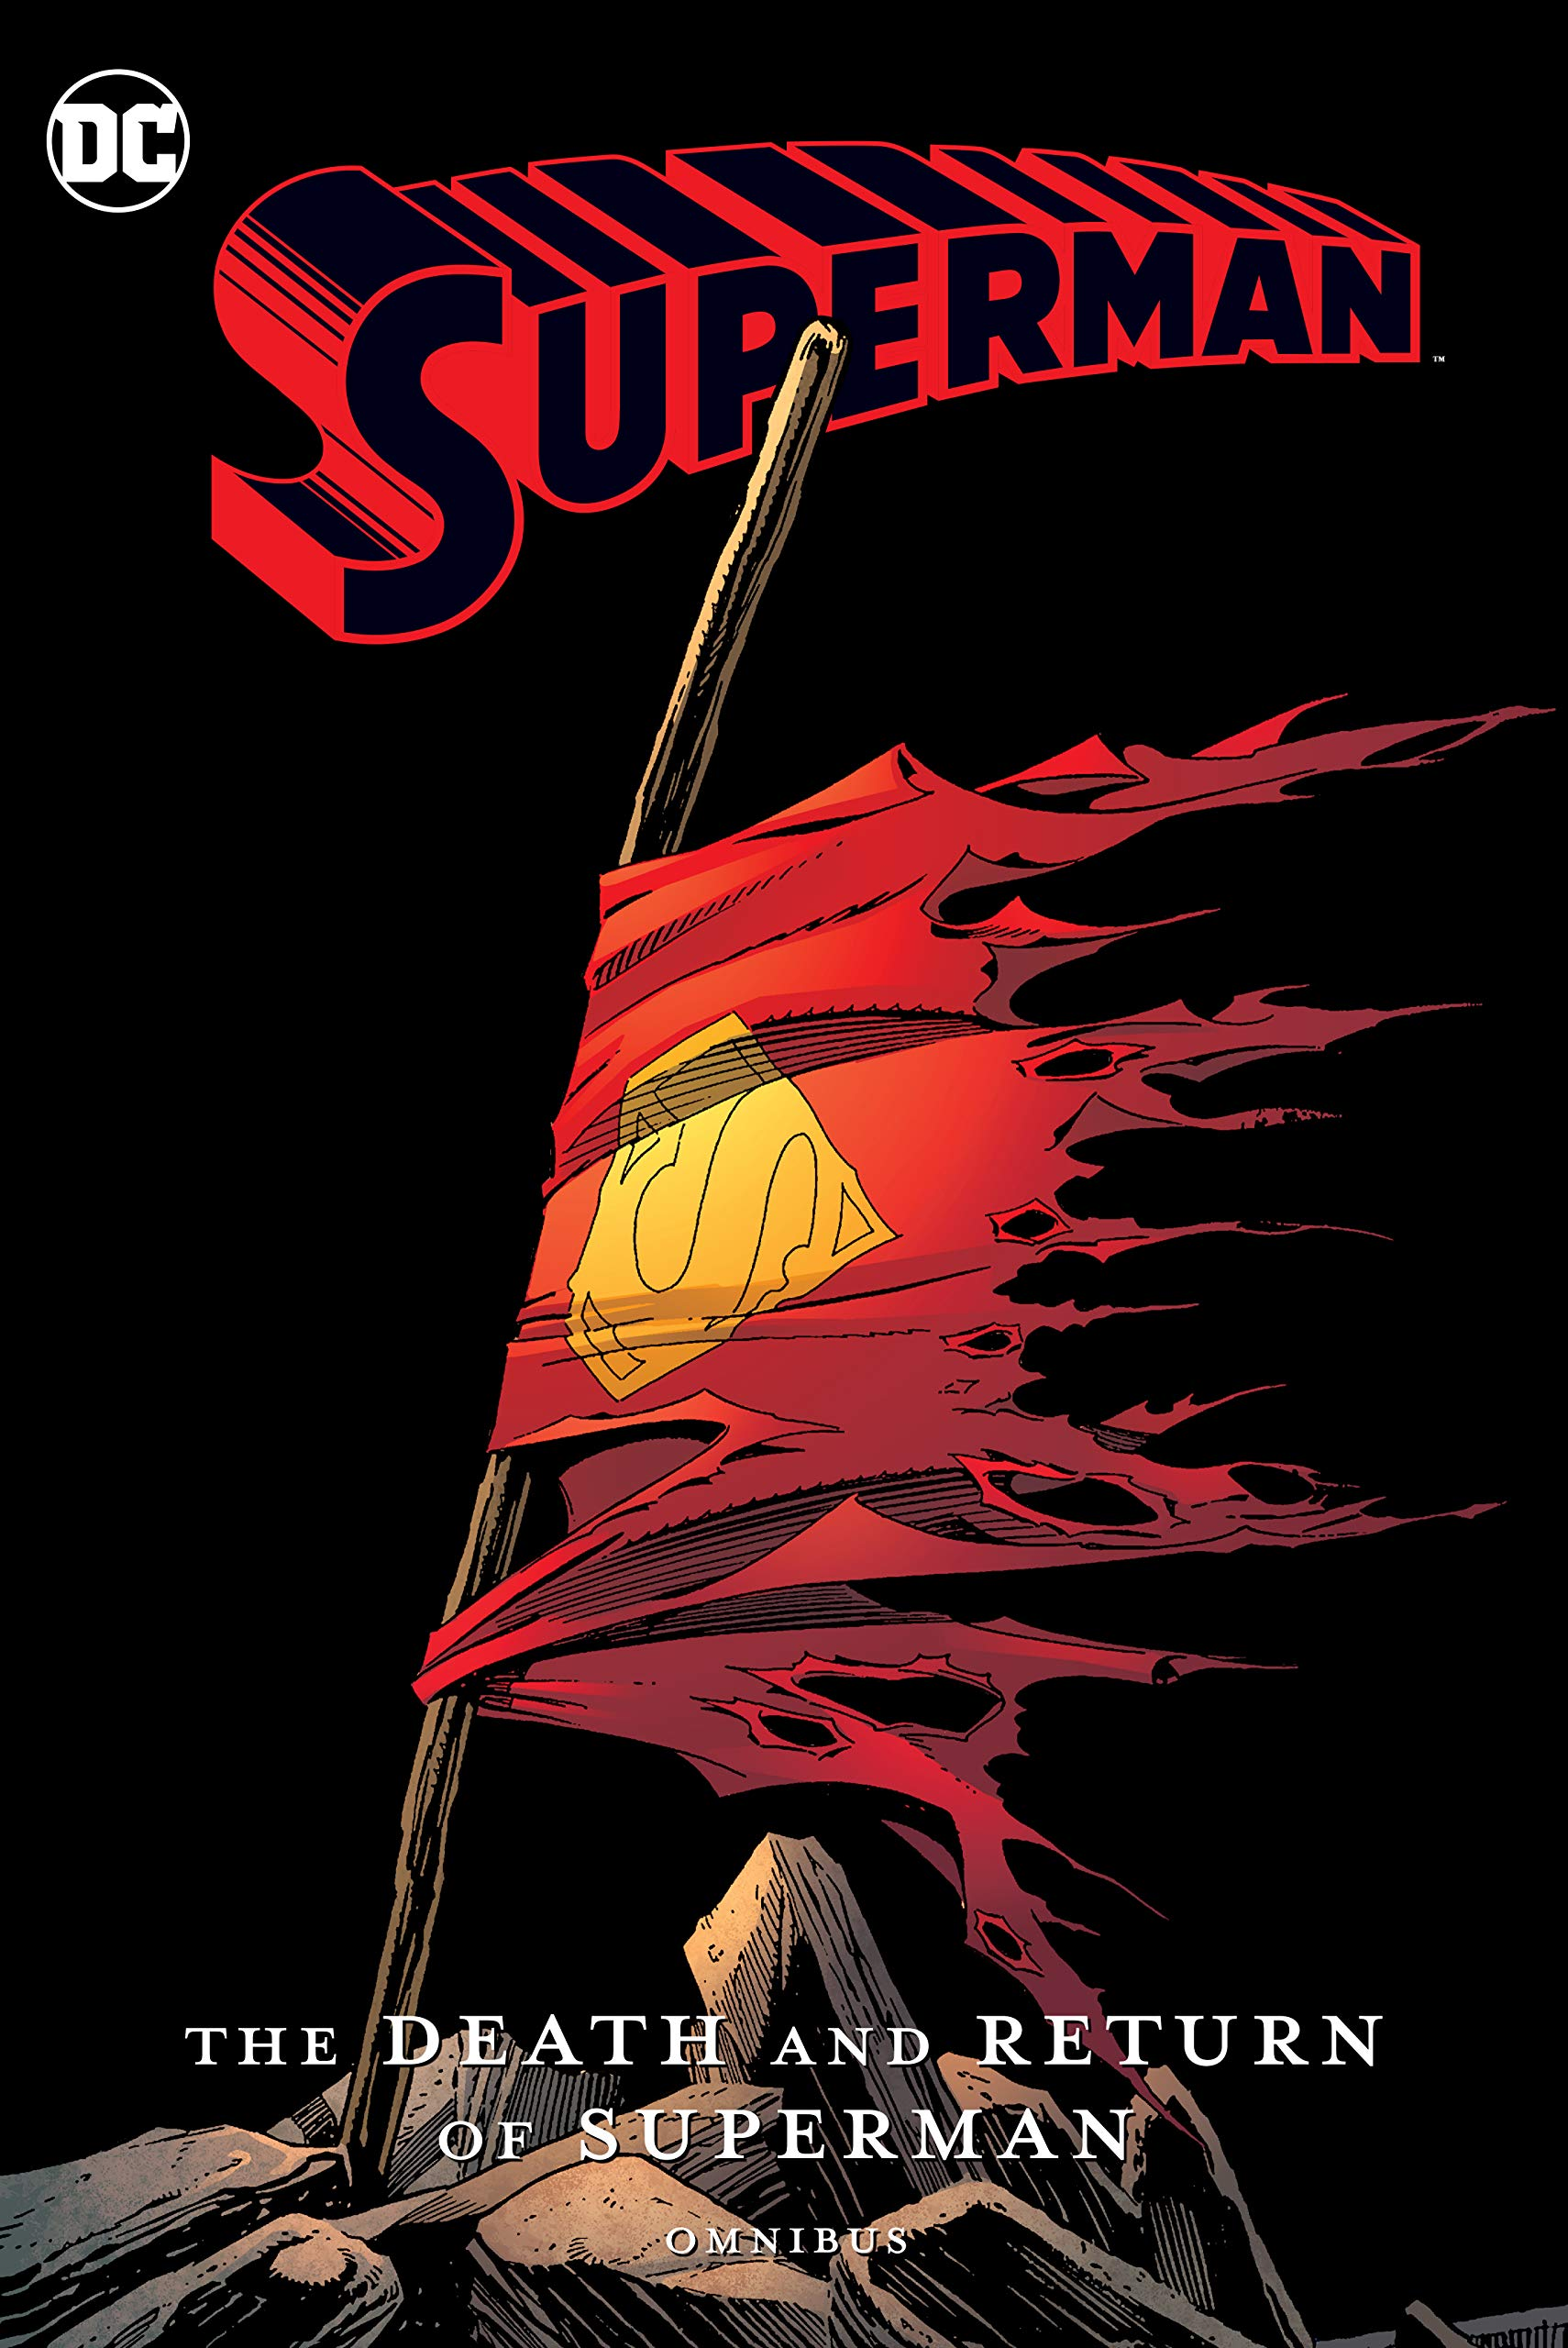 The Death and Return of Superman Omnibus (New Edition) (Superman: The Death and Return of Superman Omnibus) by DC Comics